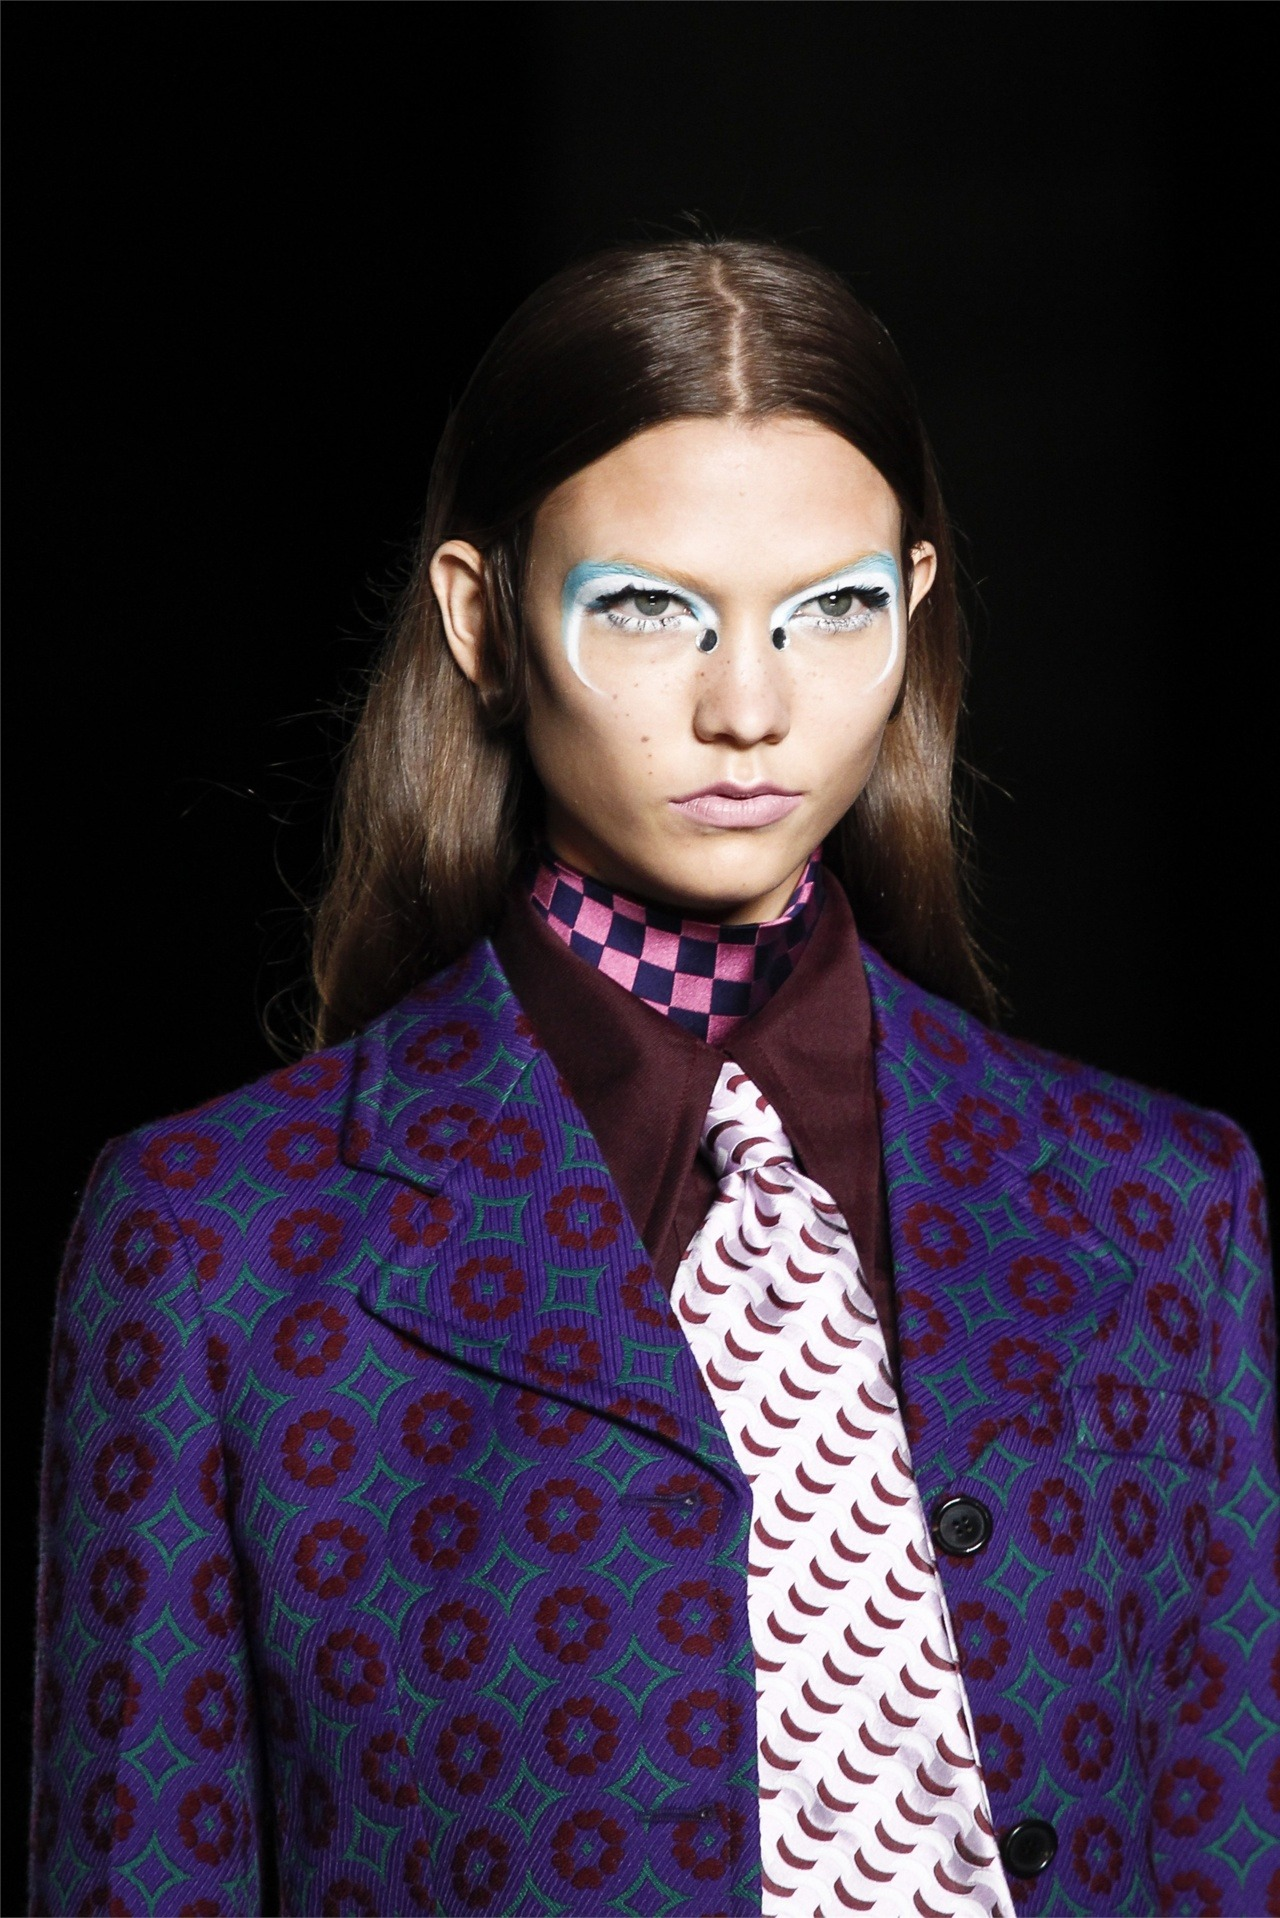 Details: Karlie Kloss in Miu Miu fw12. simply perfect.